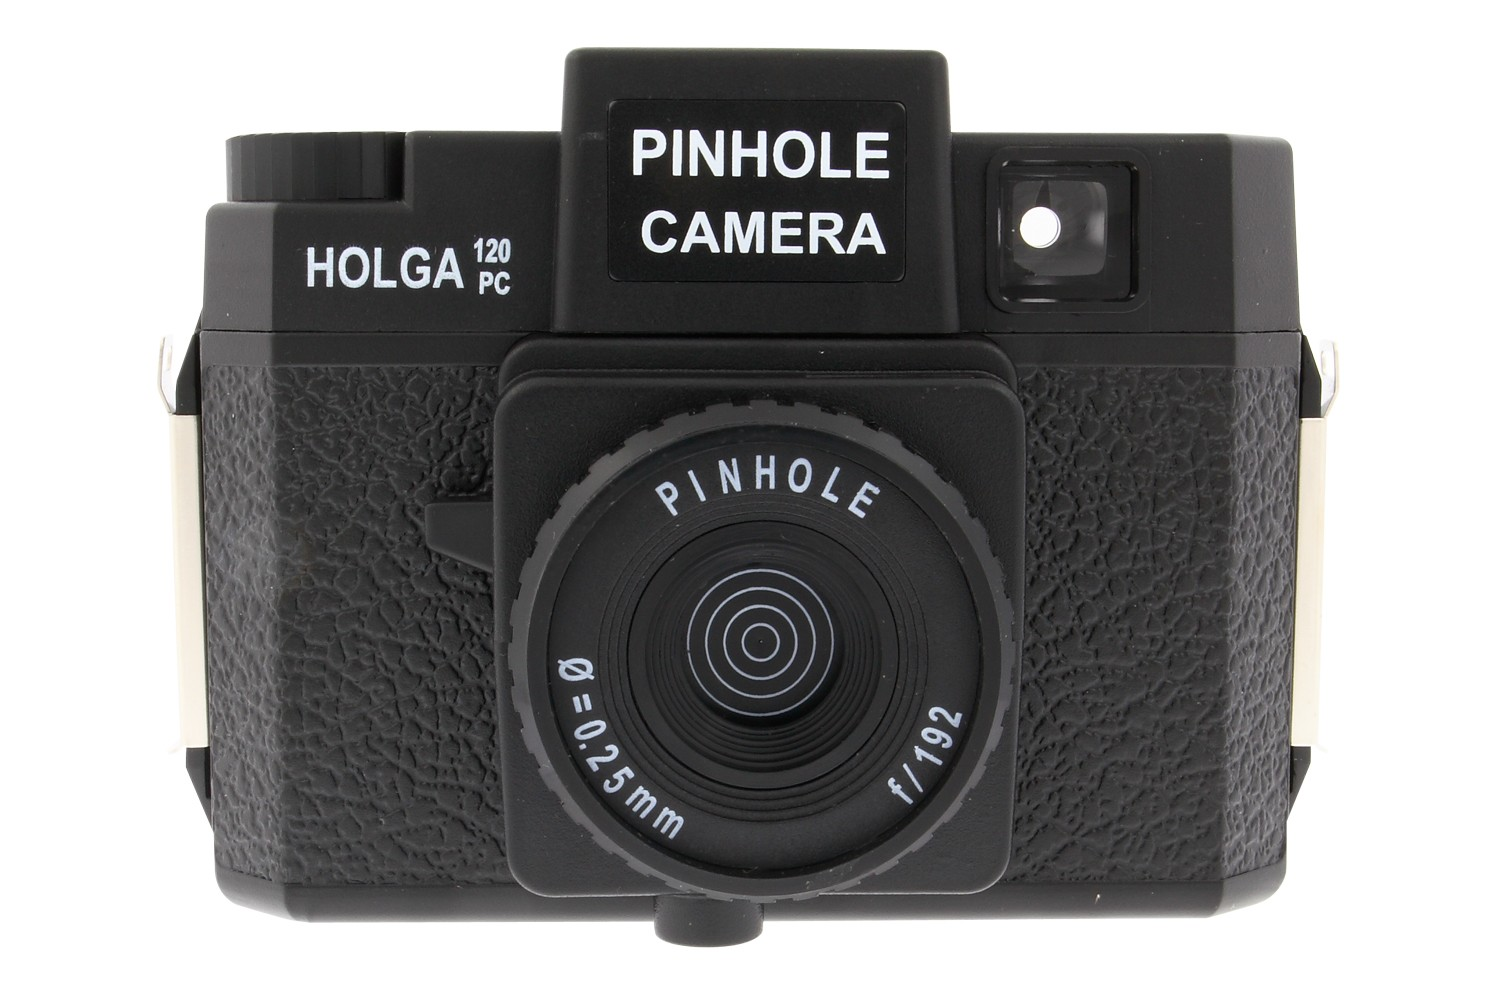 pin hole camera Worldwide pinhole photography day 82k likes worldwide pinhole photography day, the official facebook page for the celebration of the worldwide.